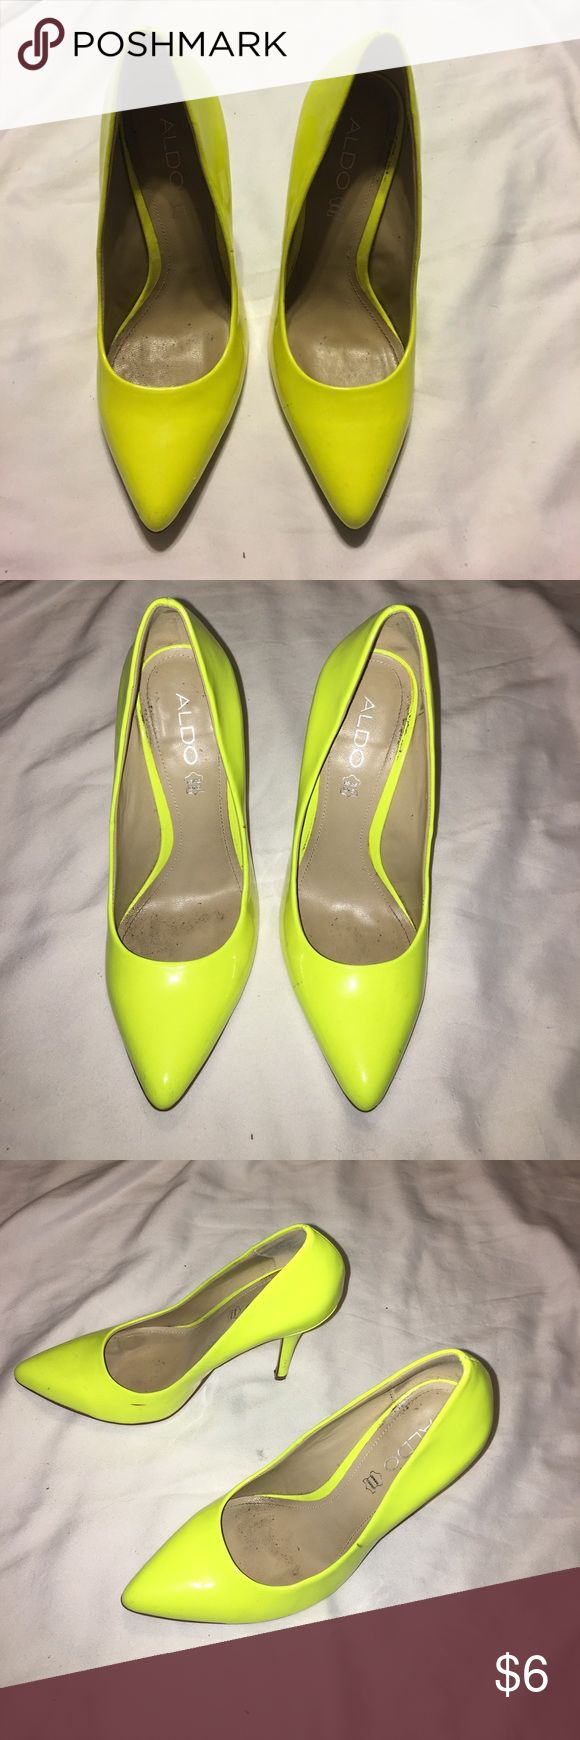 Aldo neon yellow heels Size 39. Only worn a handful of times. Beautiful shape. Few scuffs. Patent leather. Aldo Shoes Heels